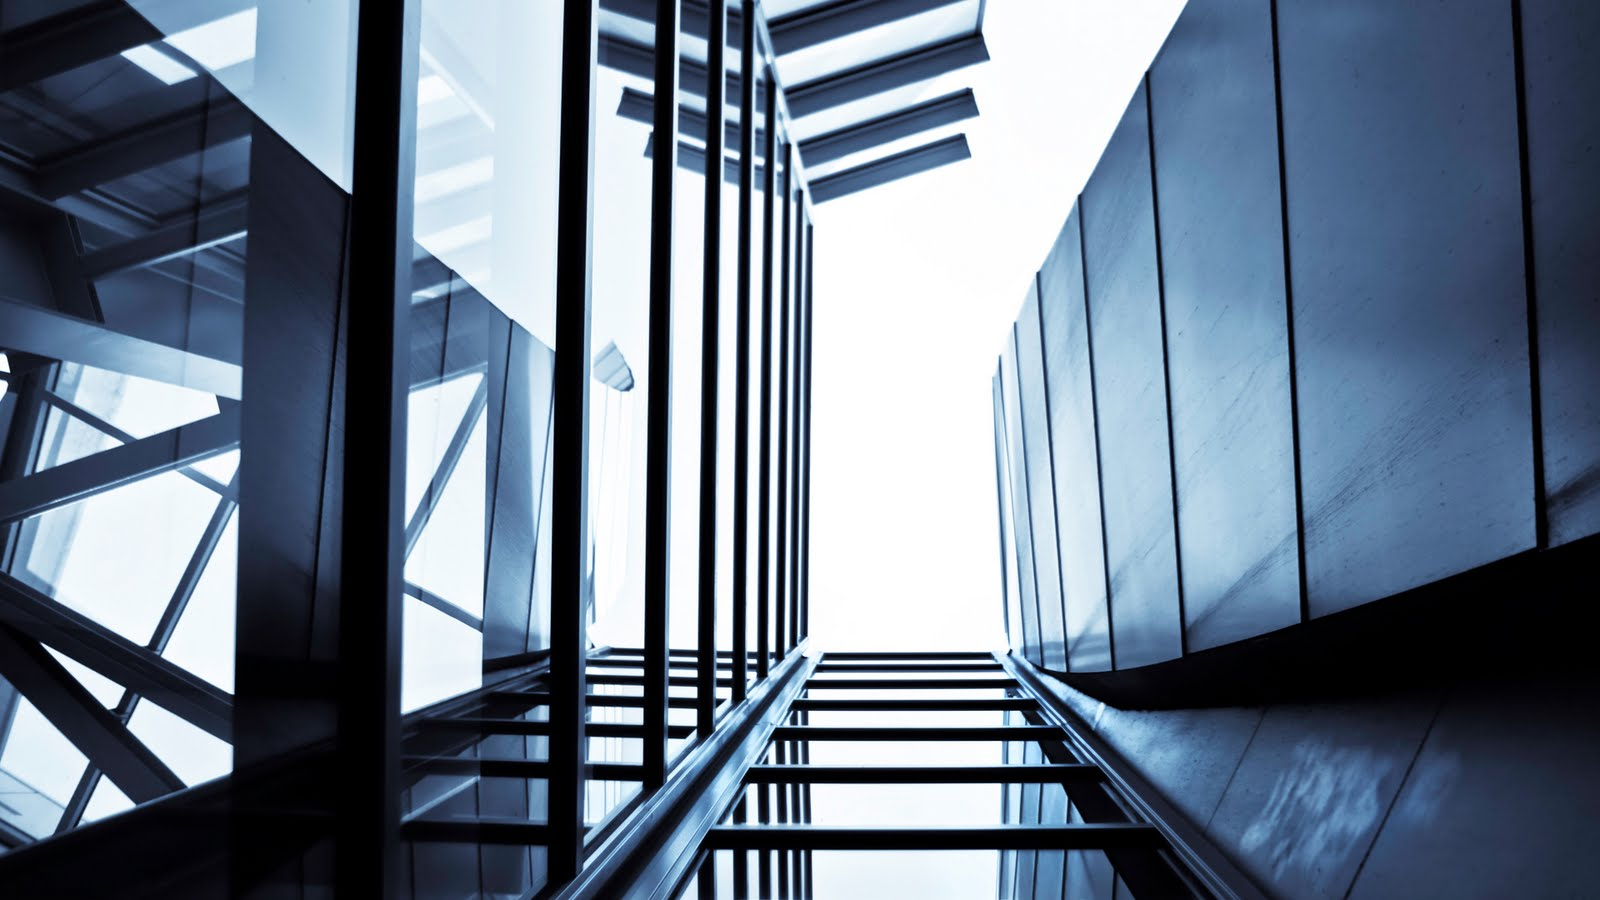 Architecture wallpaper 1080p see to world for Architecture com